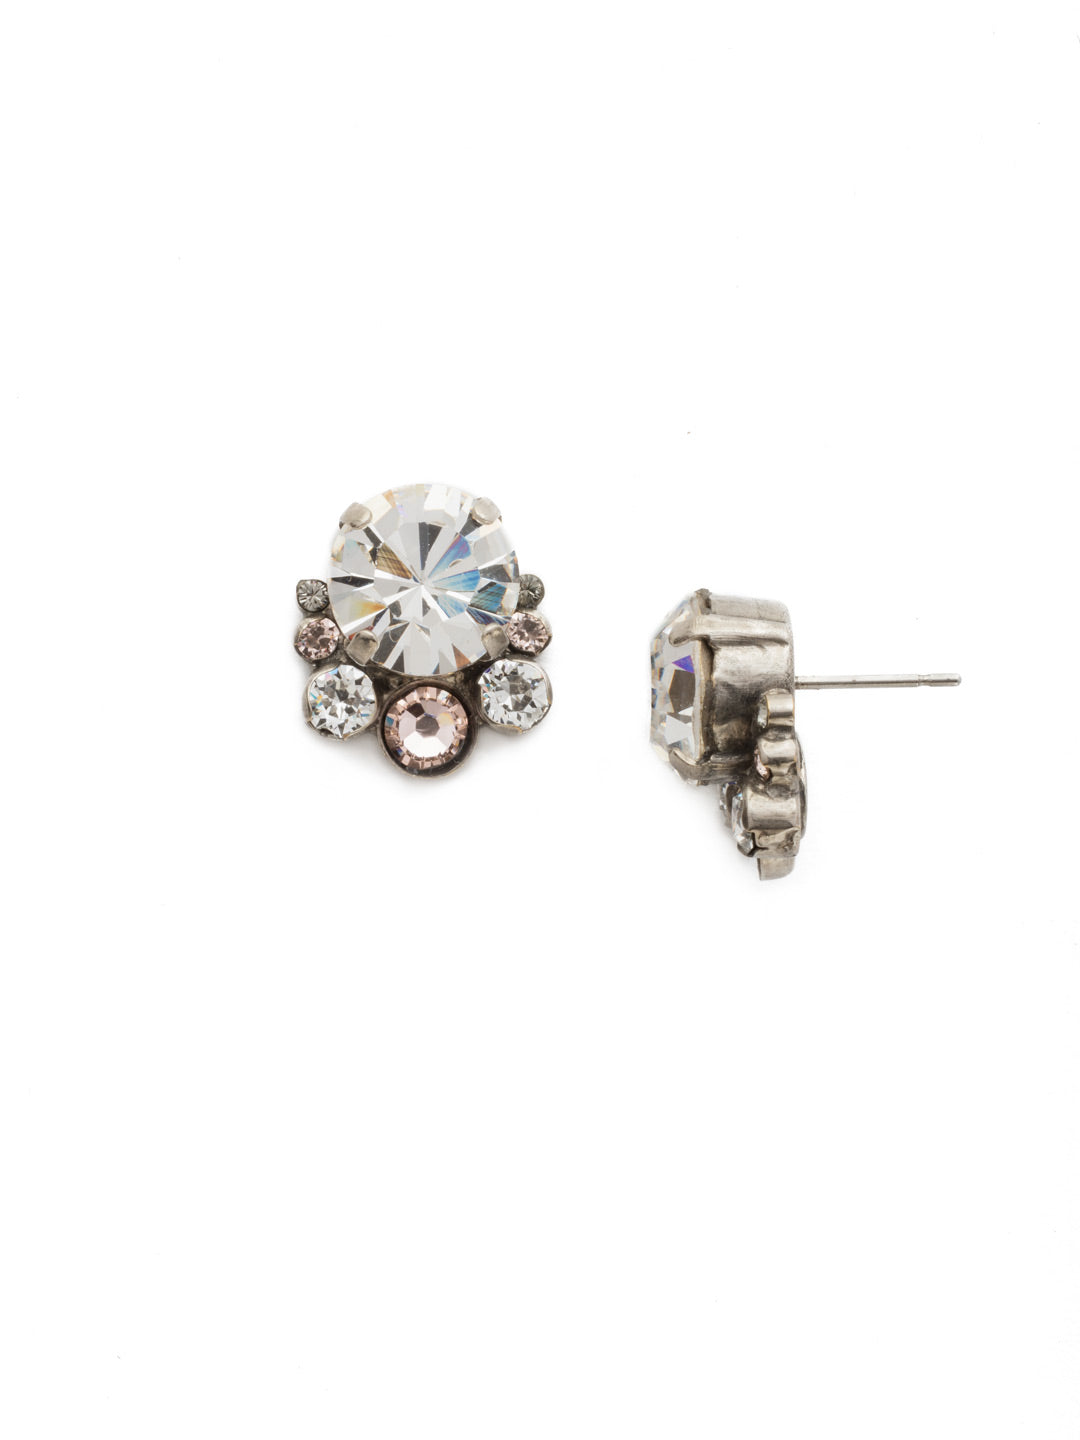 Multi-Cut Round Crystal Cluster Post Earring - ECW11ASSNB